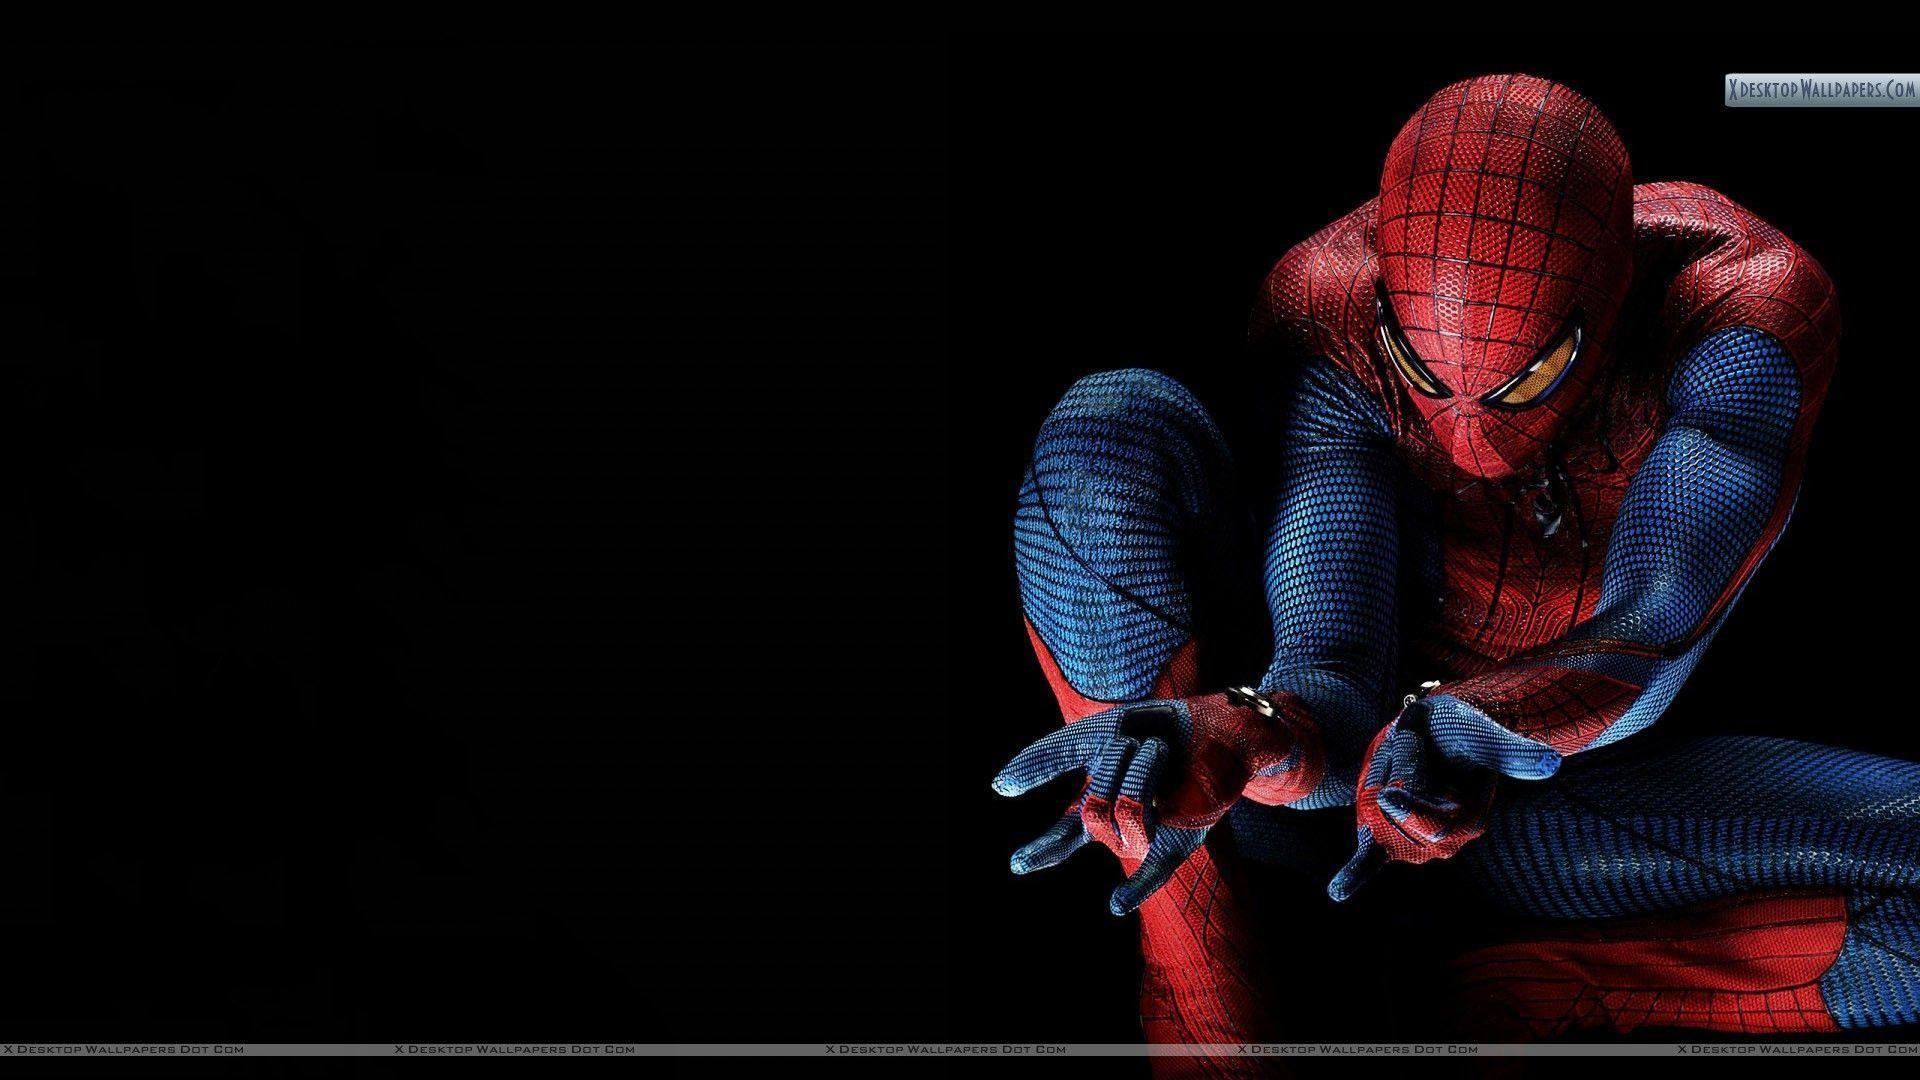 1920x1080 Spiderman Wallpapers Hd | Onlybackground